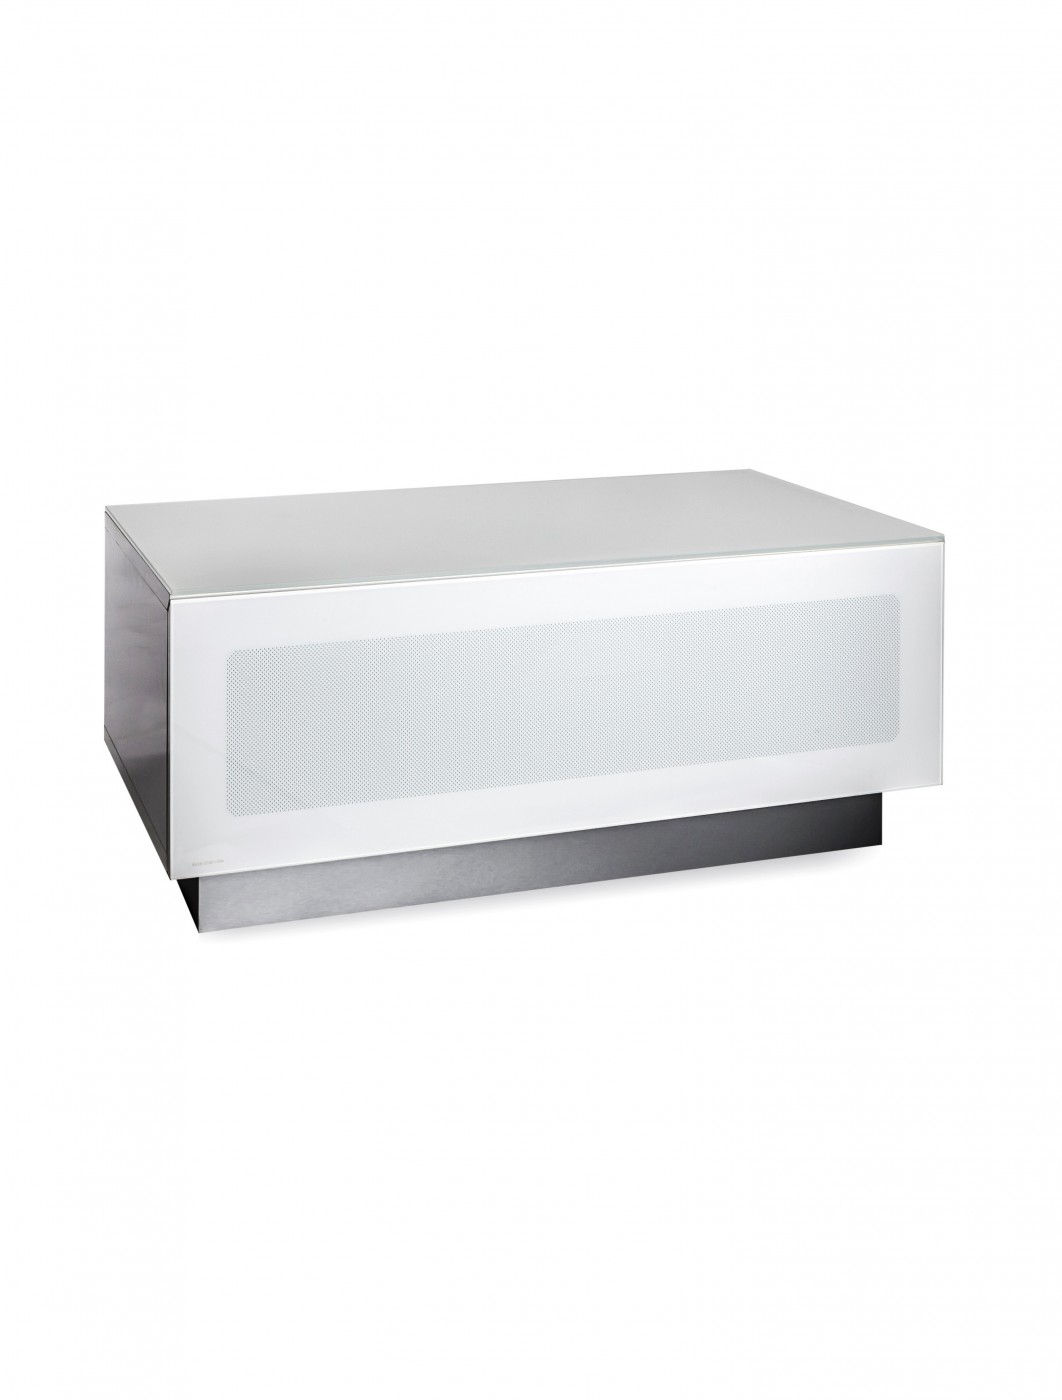 Alphason EMTMOD850-WHI Element Modular TV Stand